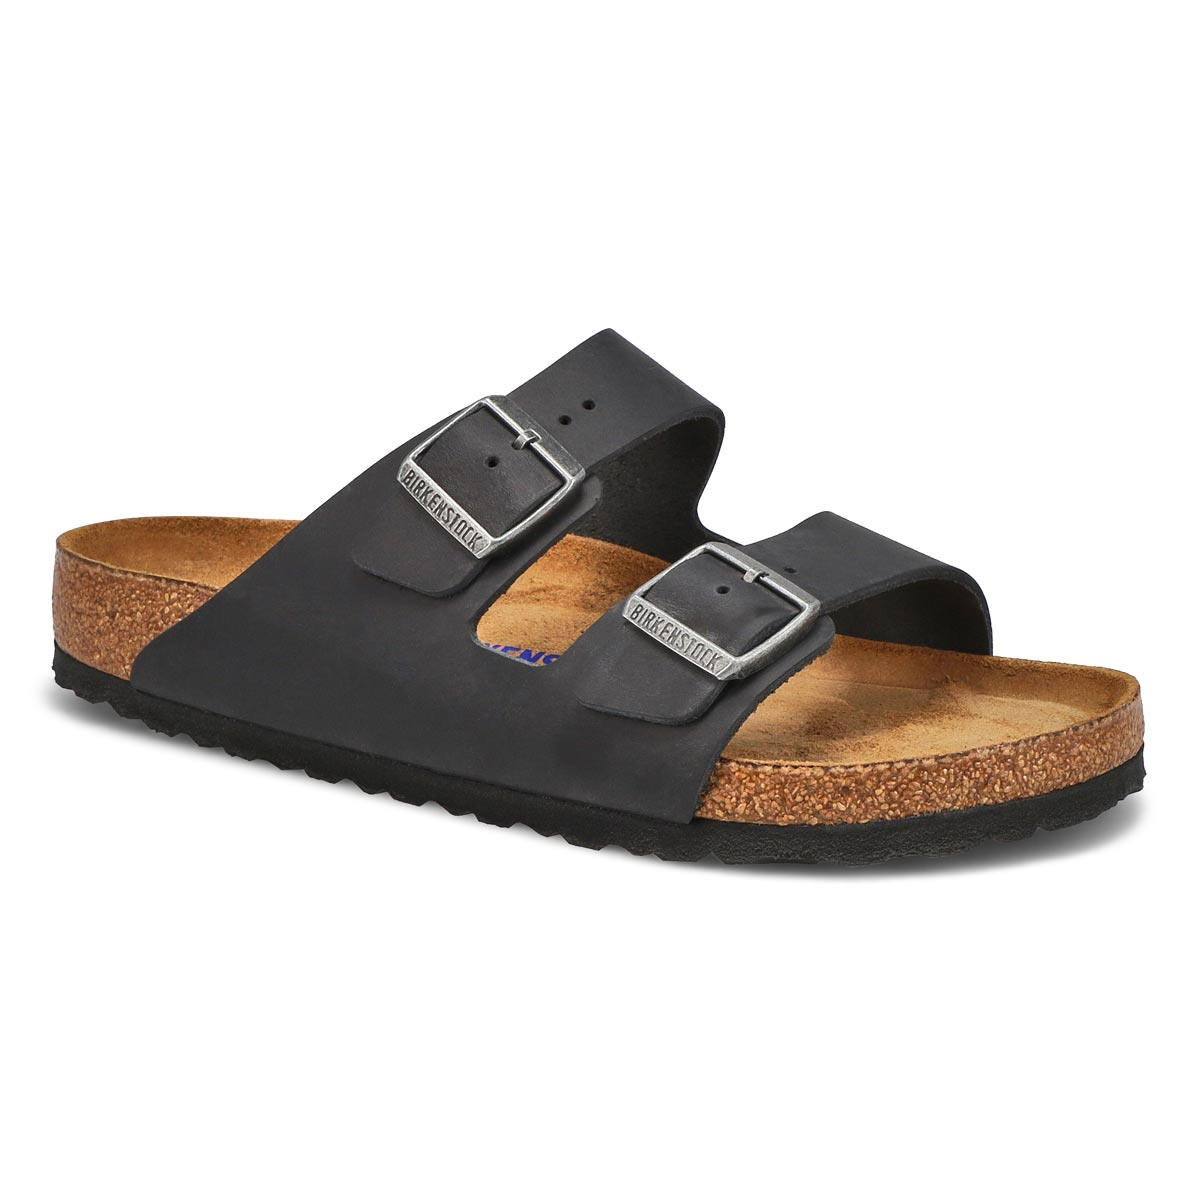 Women's ARIZONA SF 2 strap leather sandals